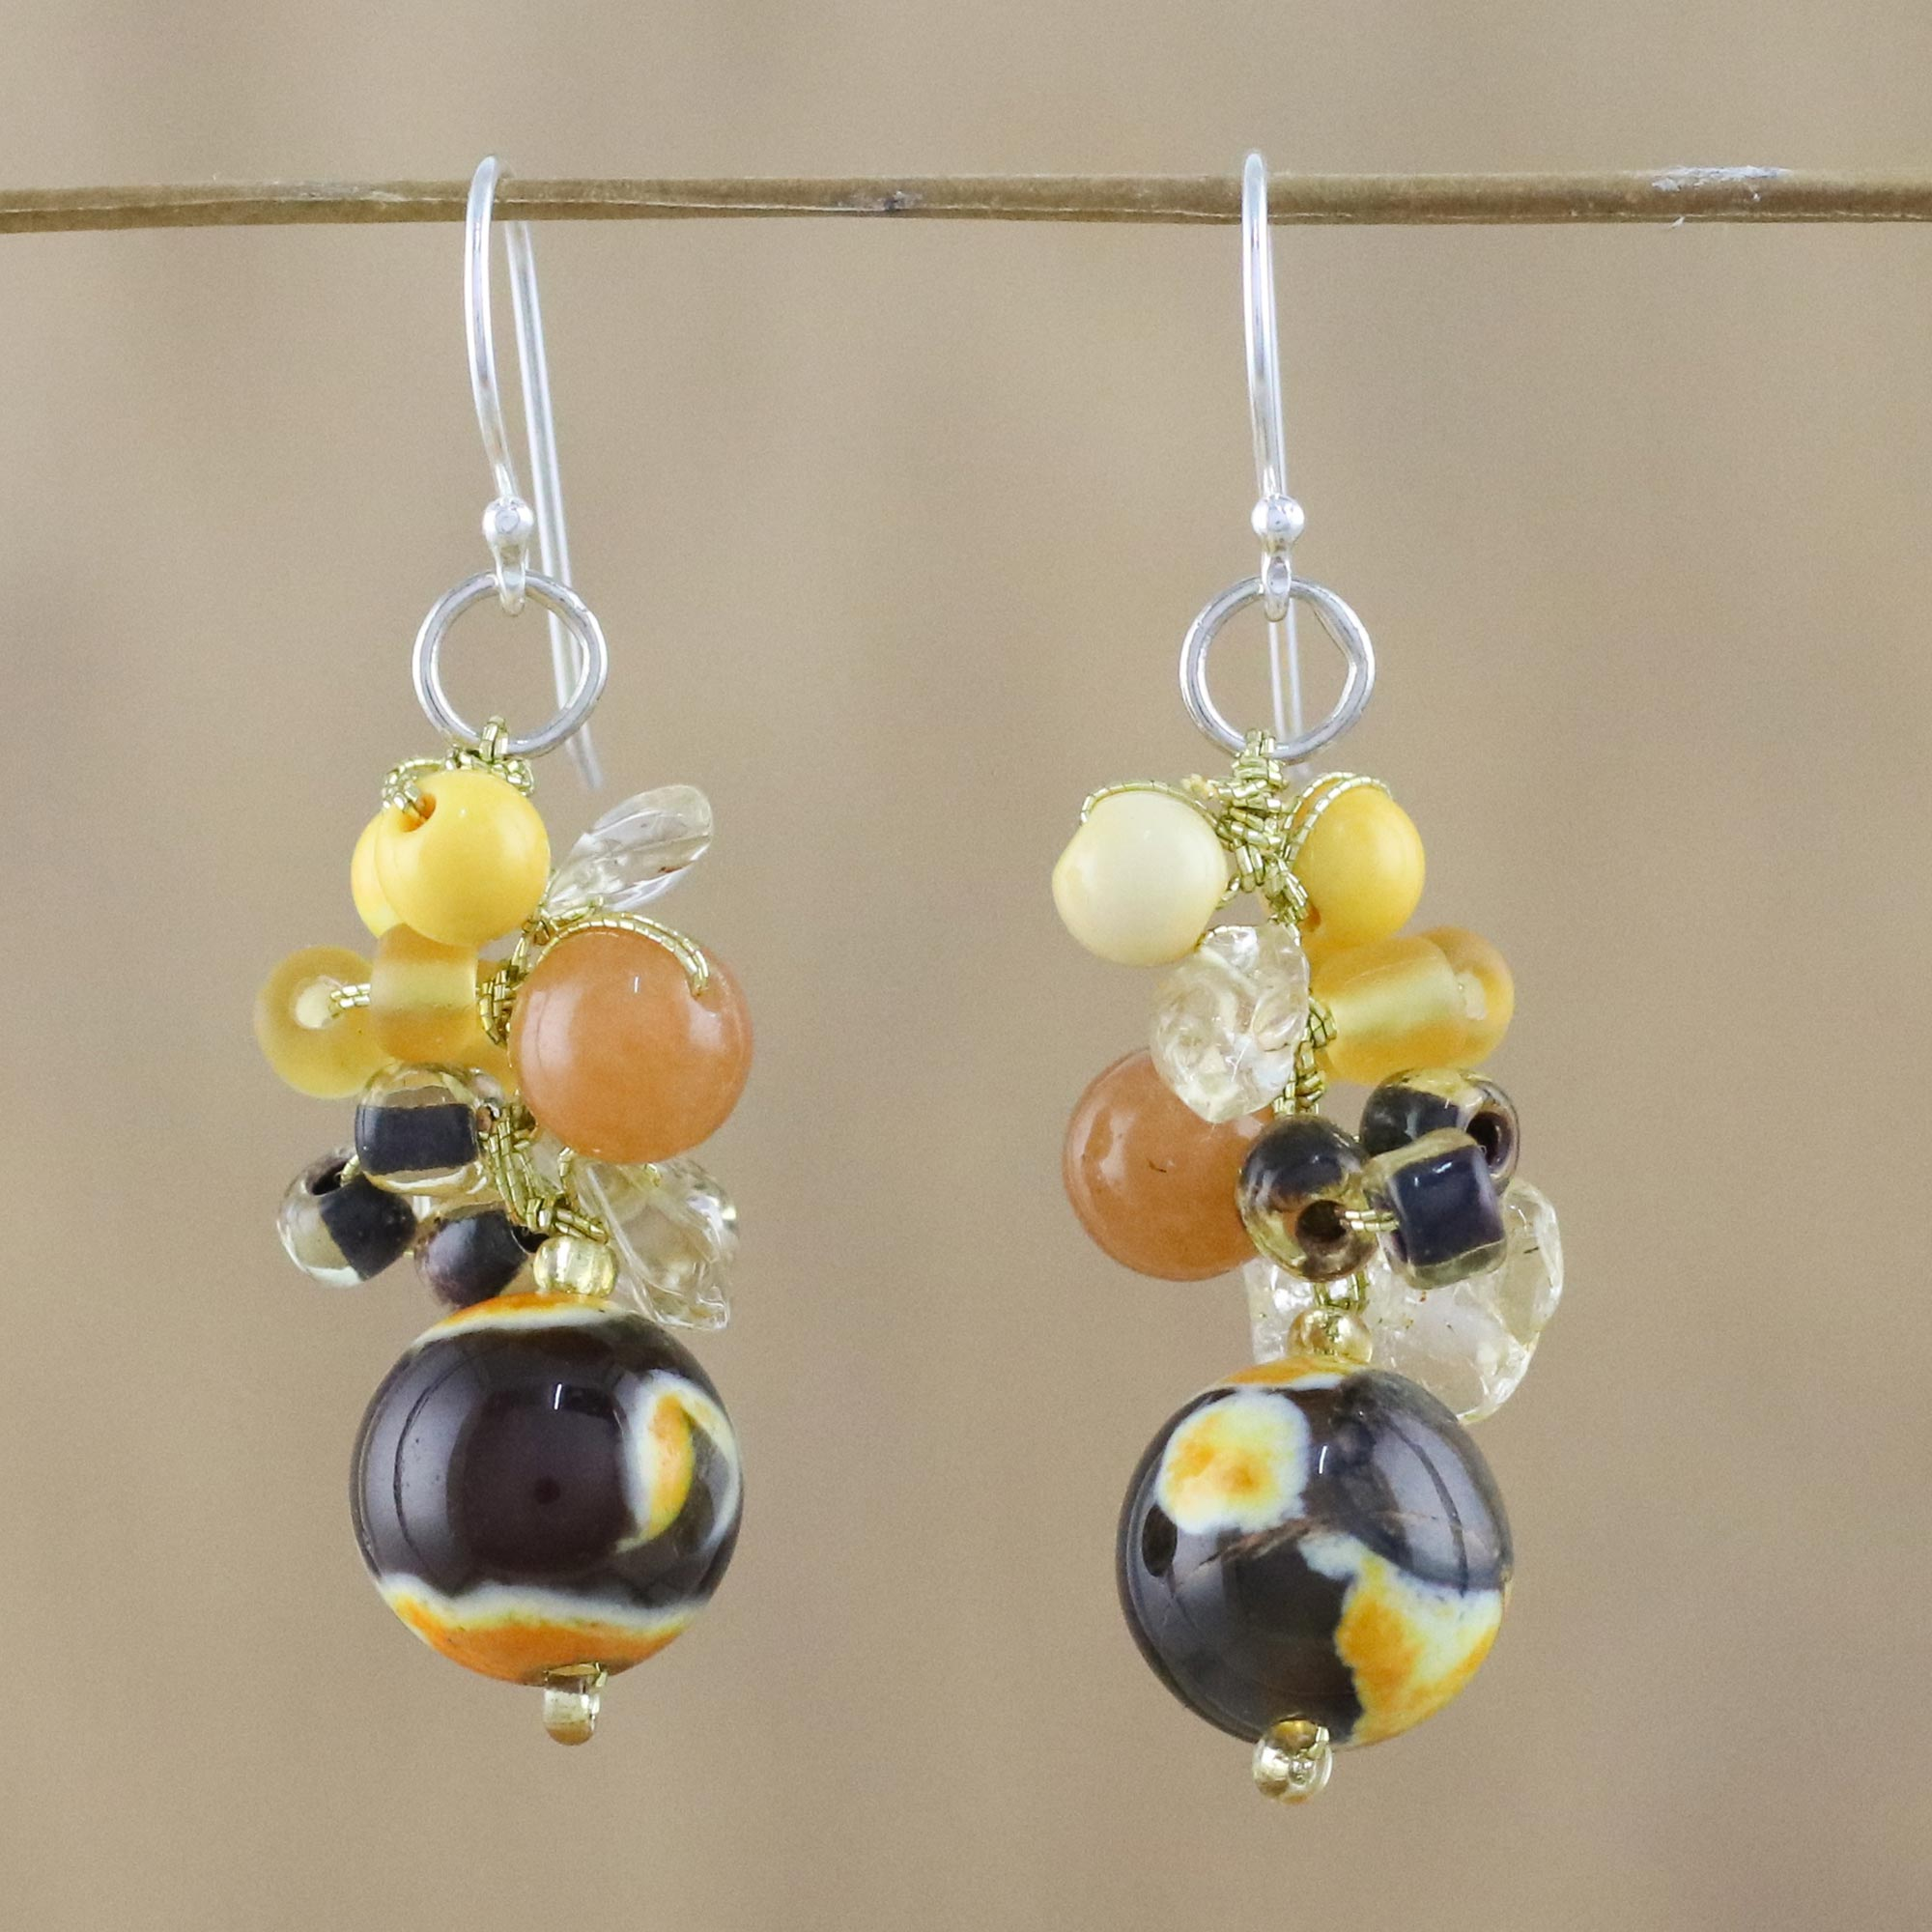 Yellow Quartz And Citrine Dangle Earrings From Thailand Lovely Blend In